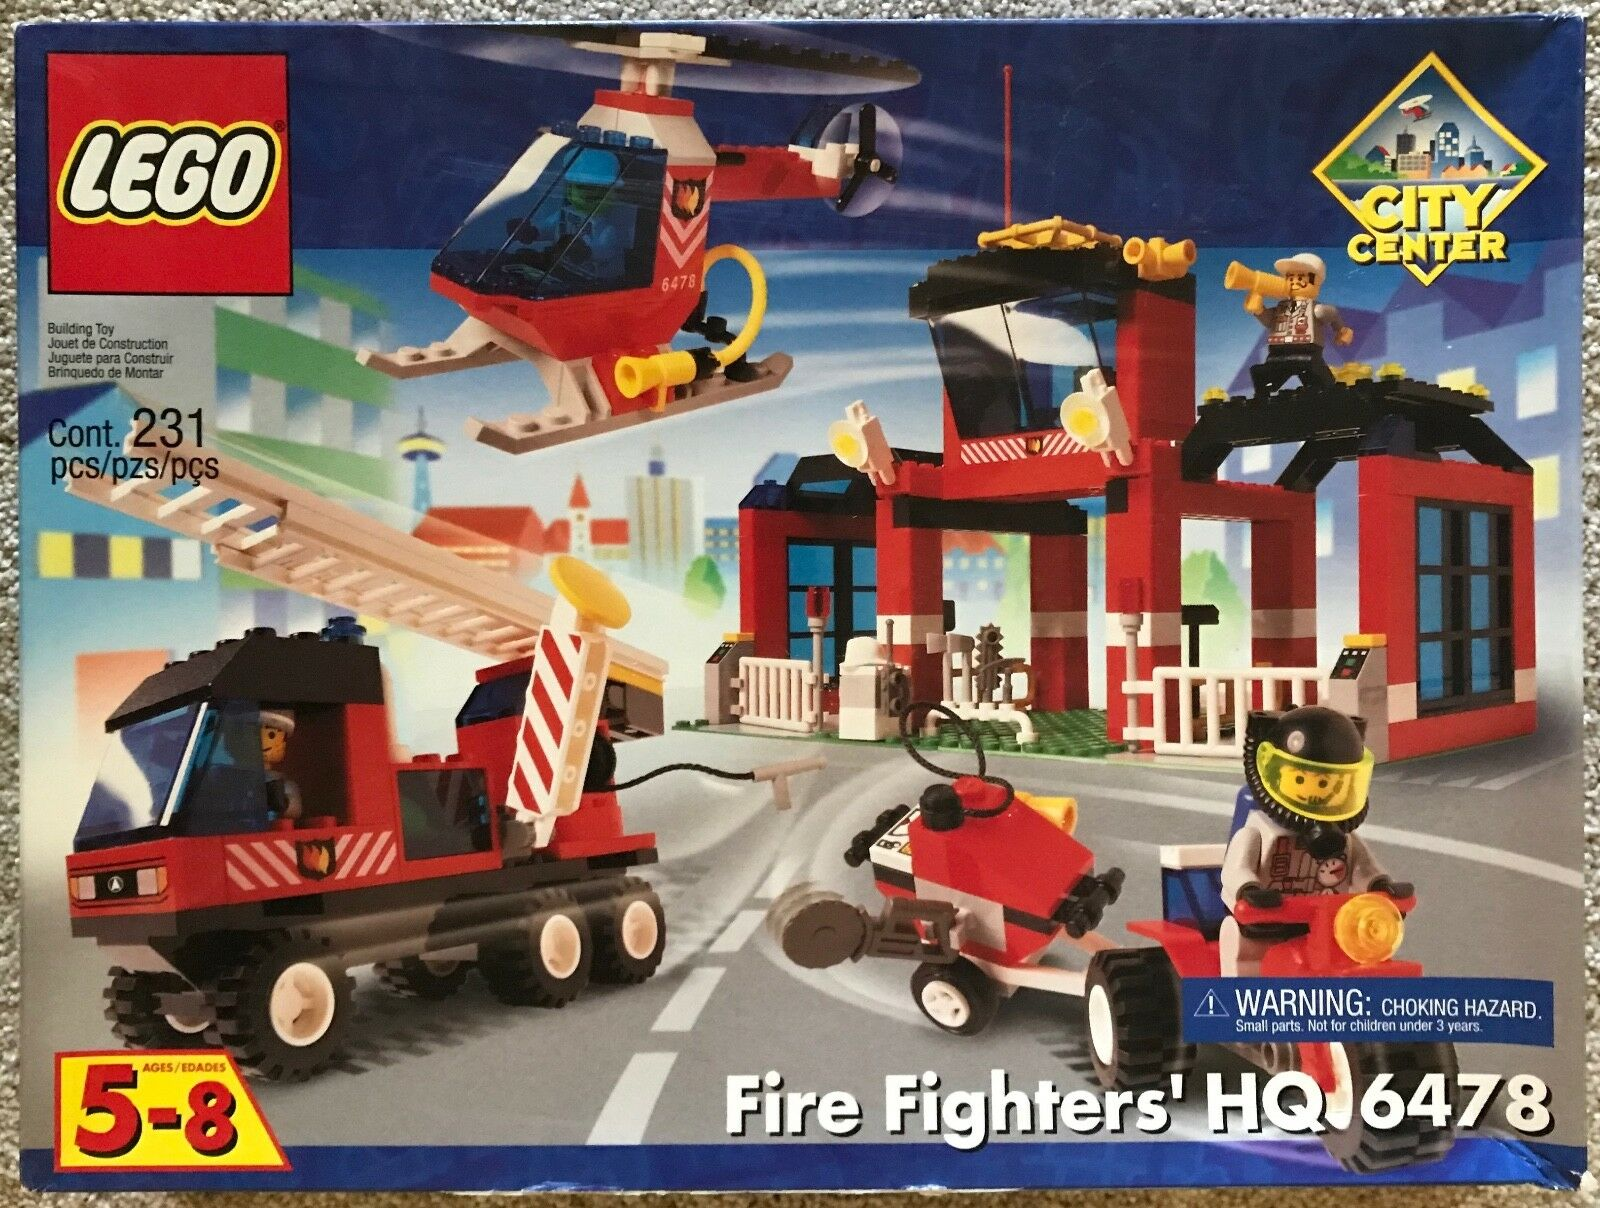 Lego City Center bomberos's HQ (6478) Nuevo, Sellado, jubilado